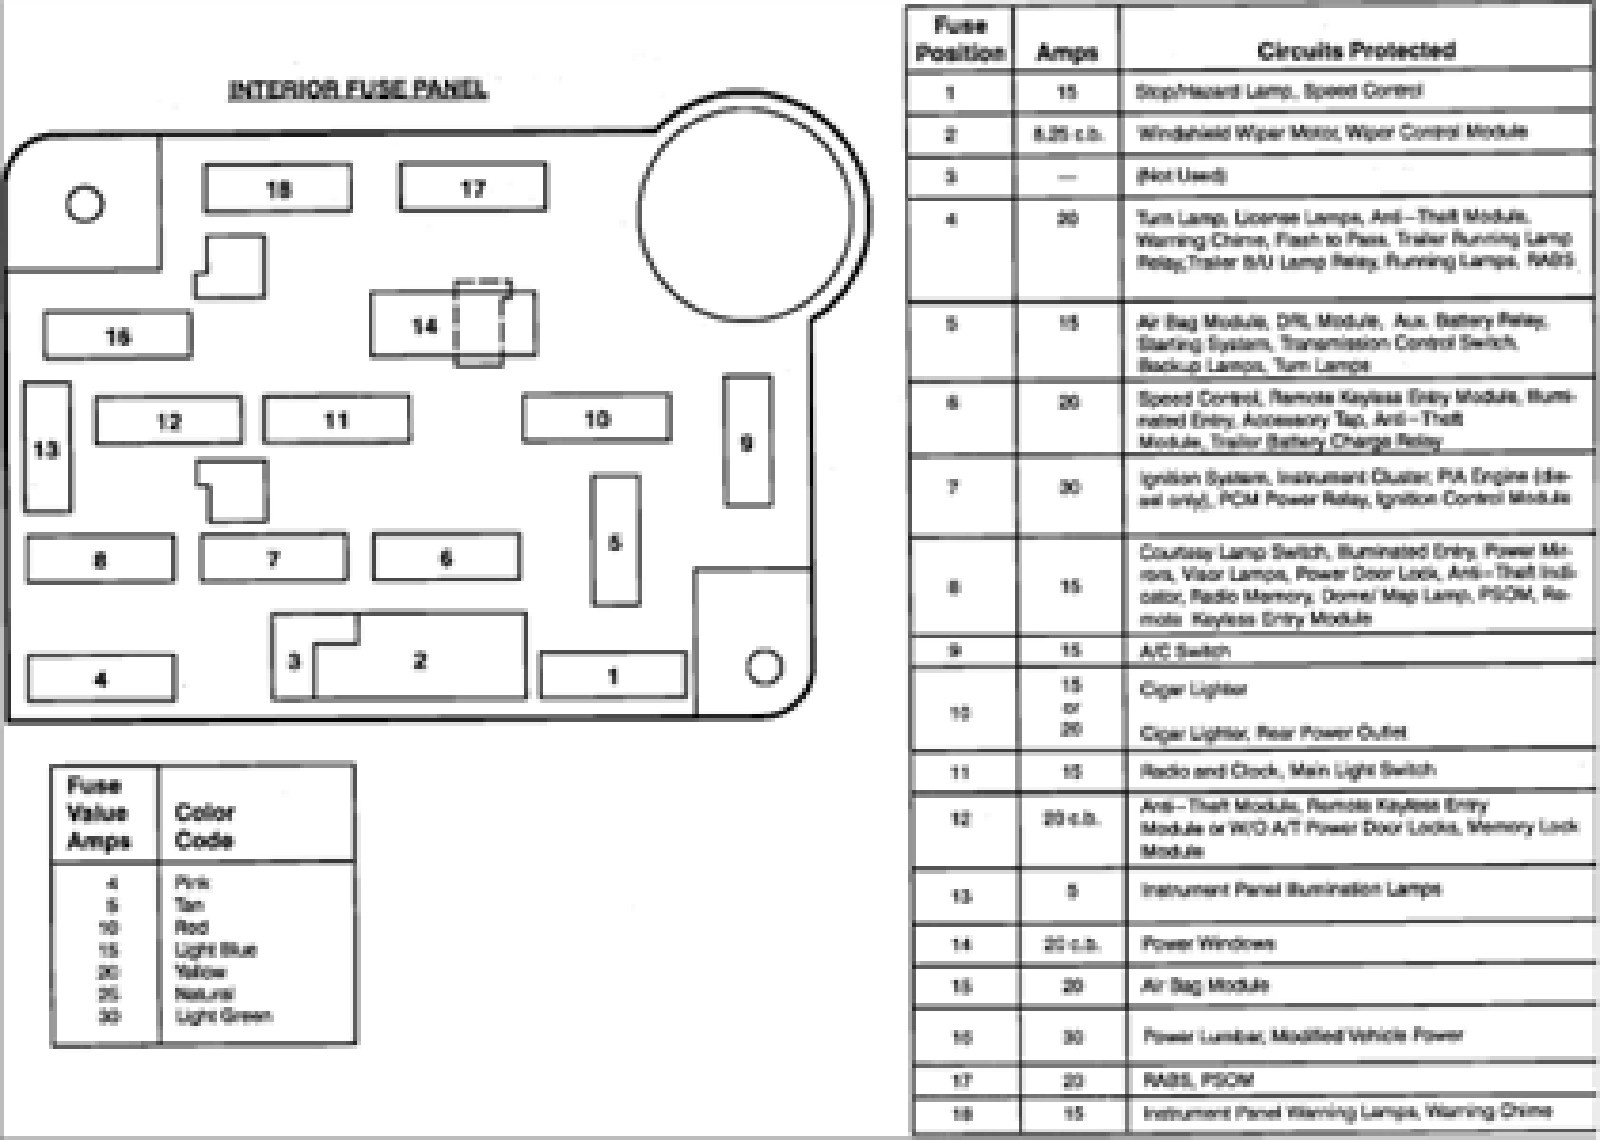 hight resolution of ford e 150 questions fuse diagram for a 1993 ford econoline van ford van fuse box ford van fuse diagram